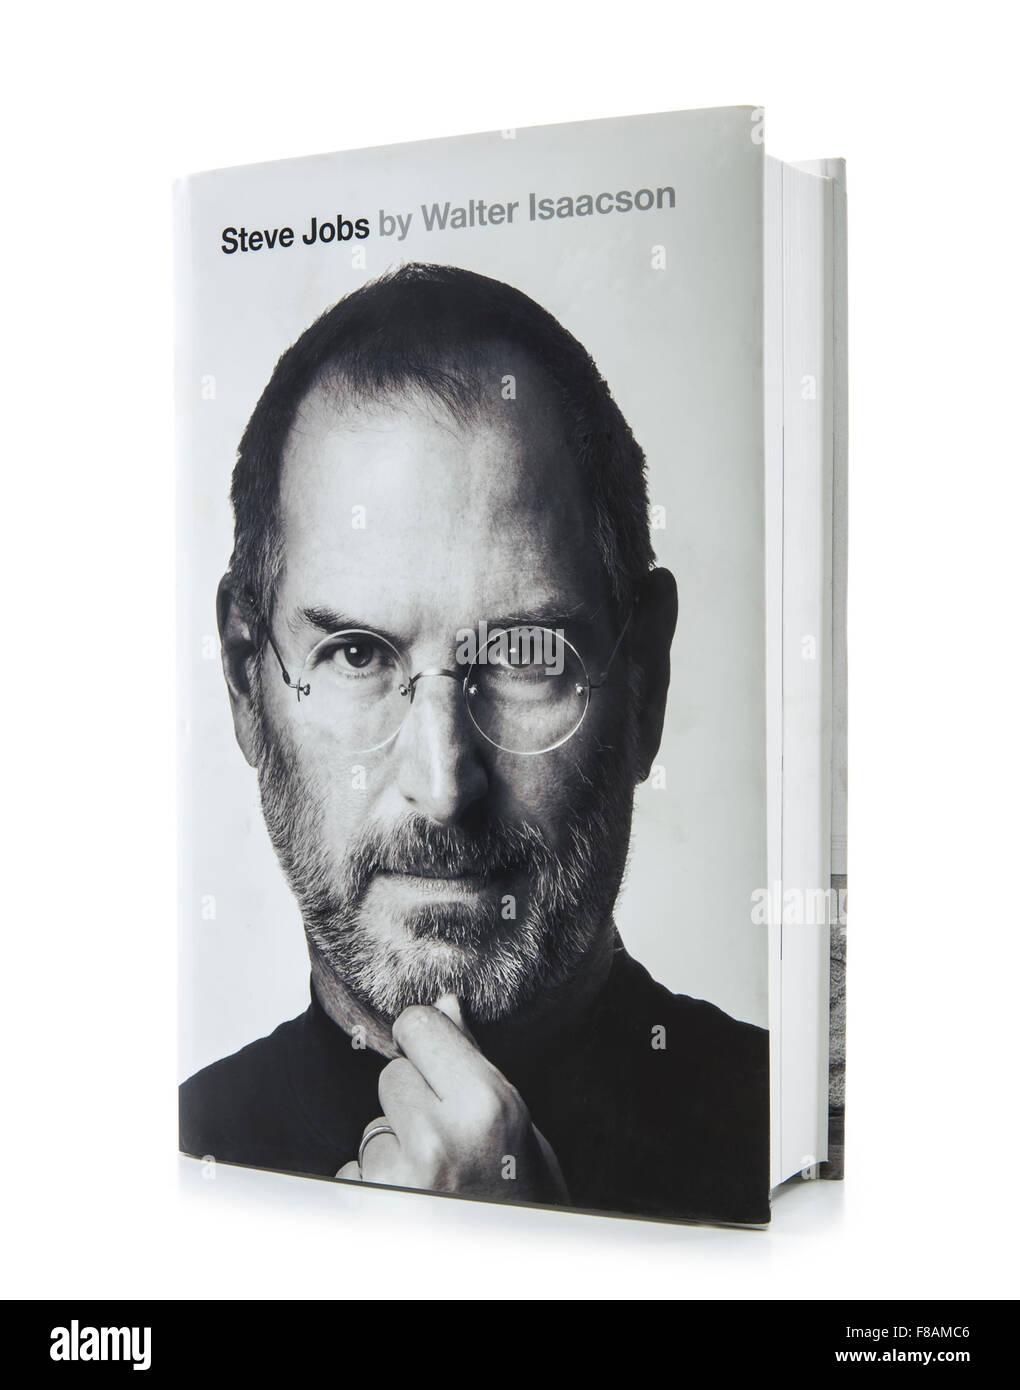 Steve Jobs  Biography by Walter Isaacson - Stock Image